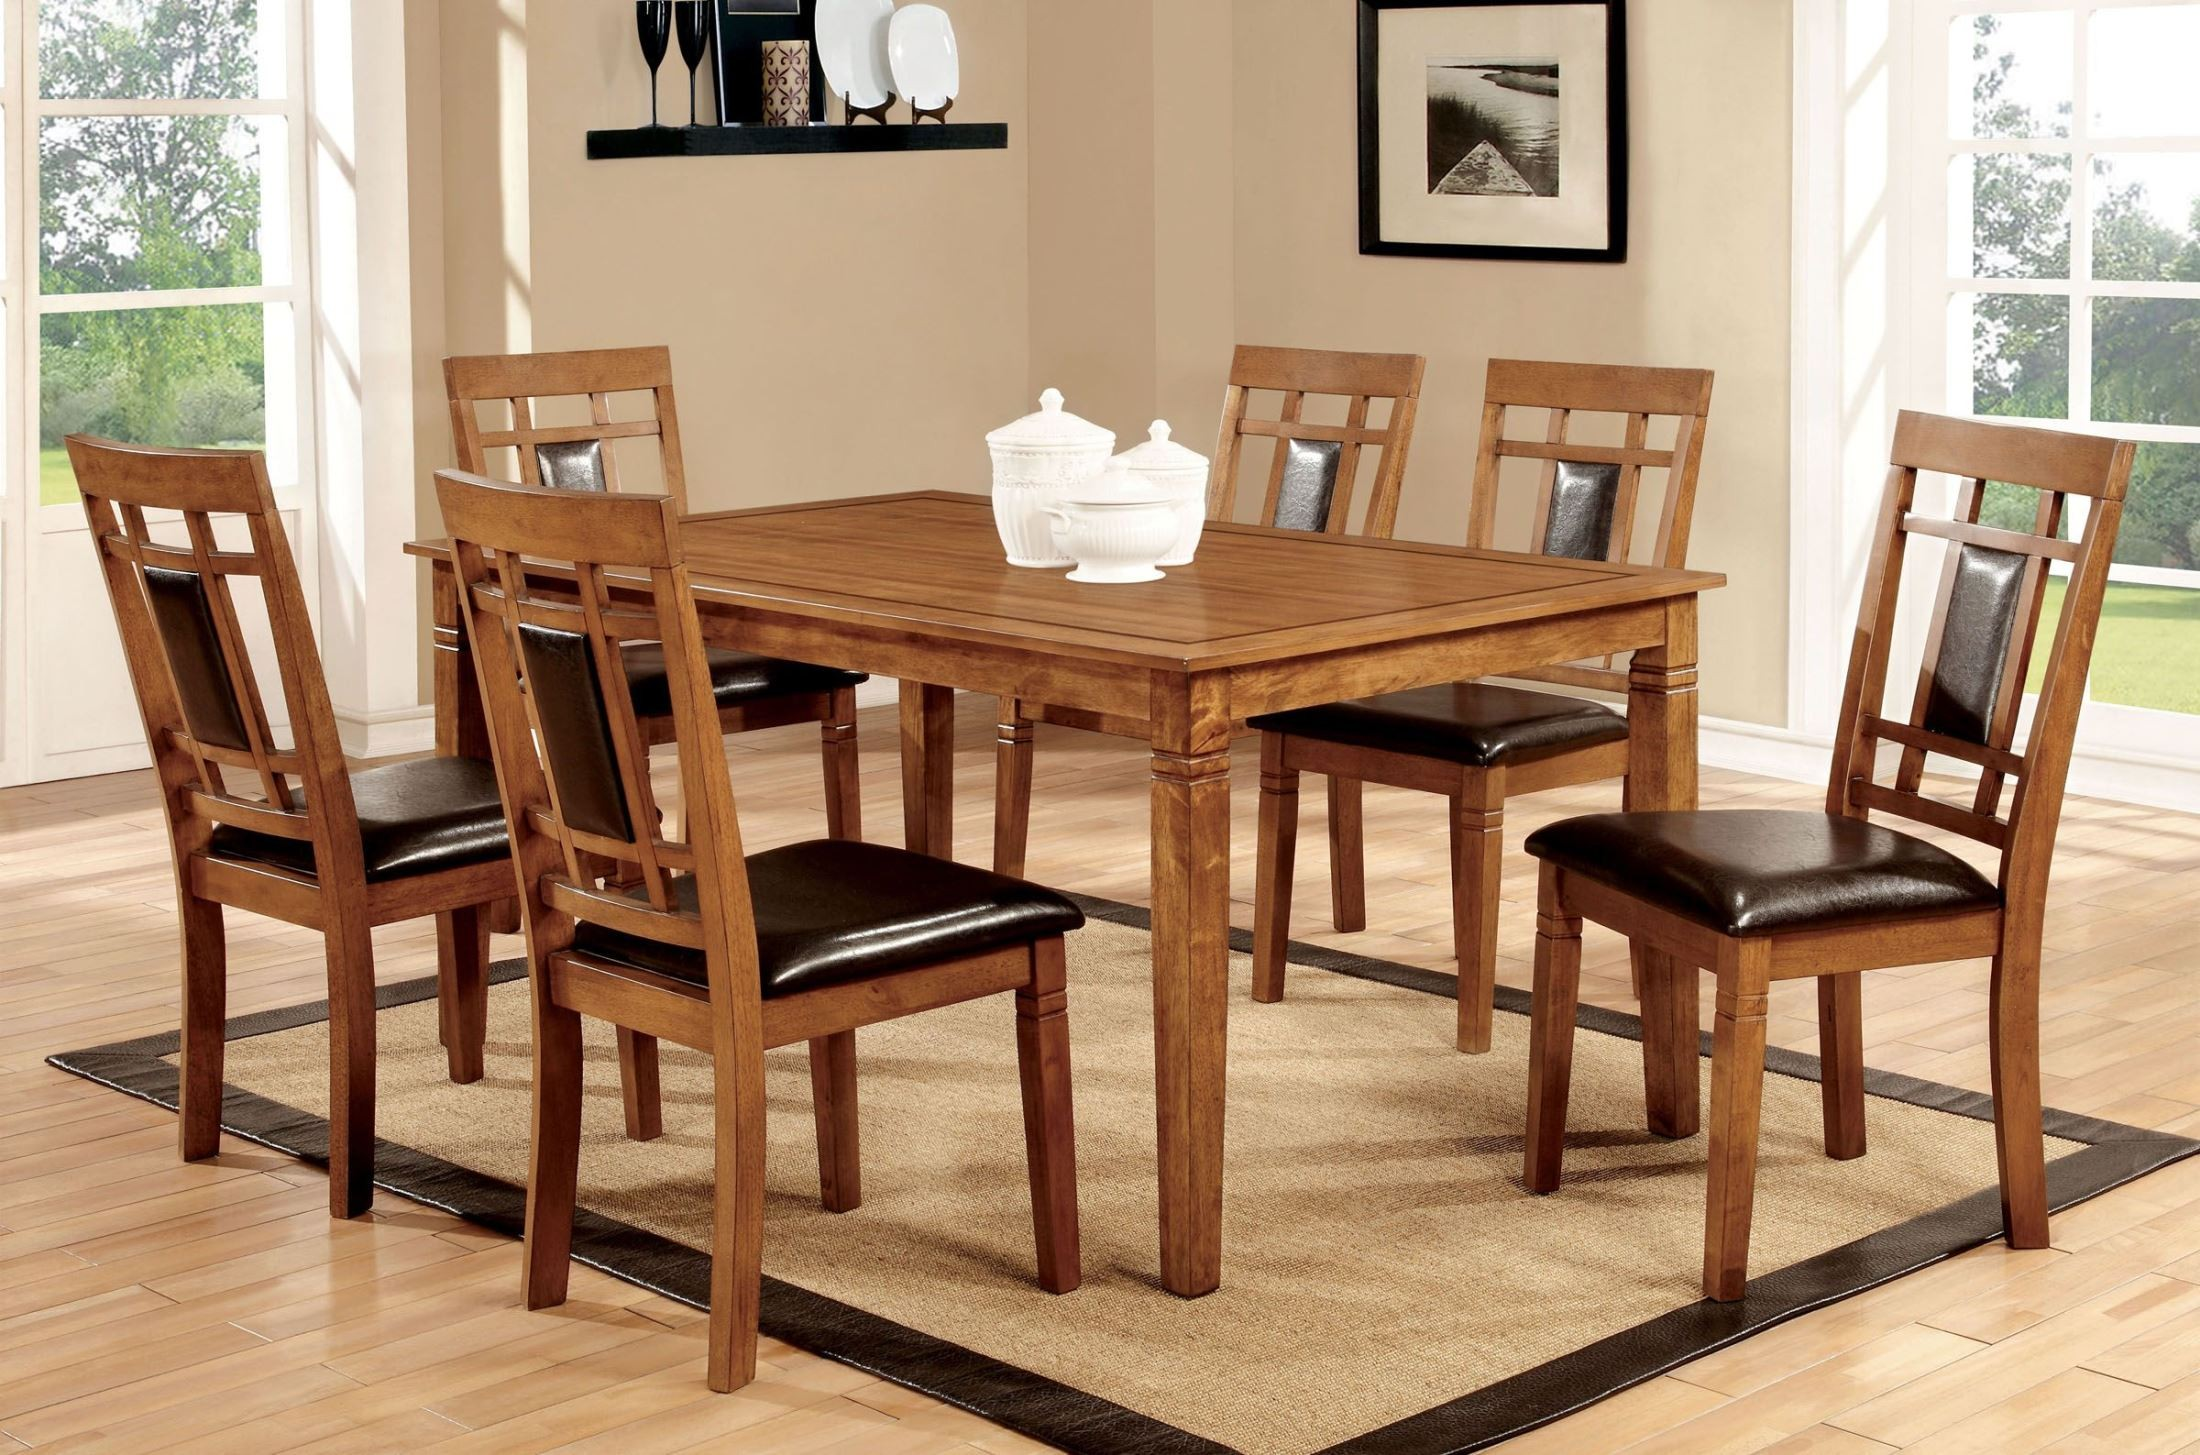 Freeman i light oak 7 piece dining room set from furniture for 7 piece dining room set